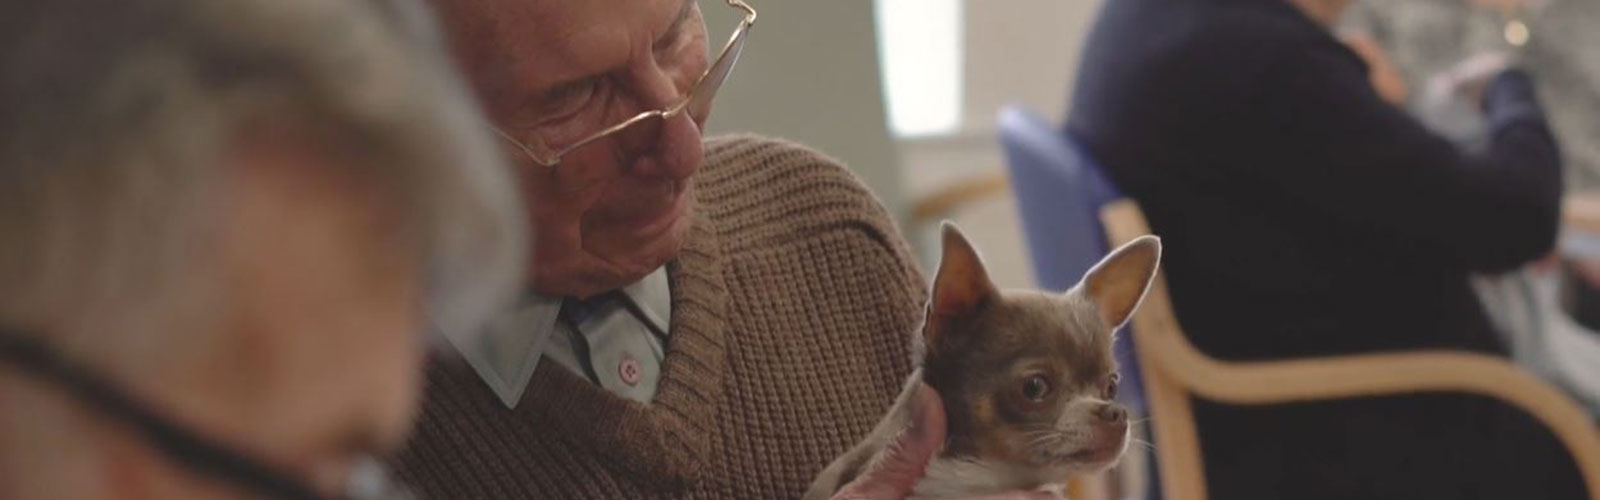 An older man with glasses holding a small dog